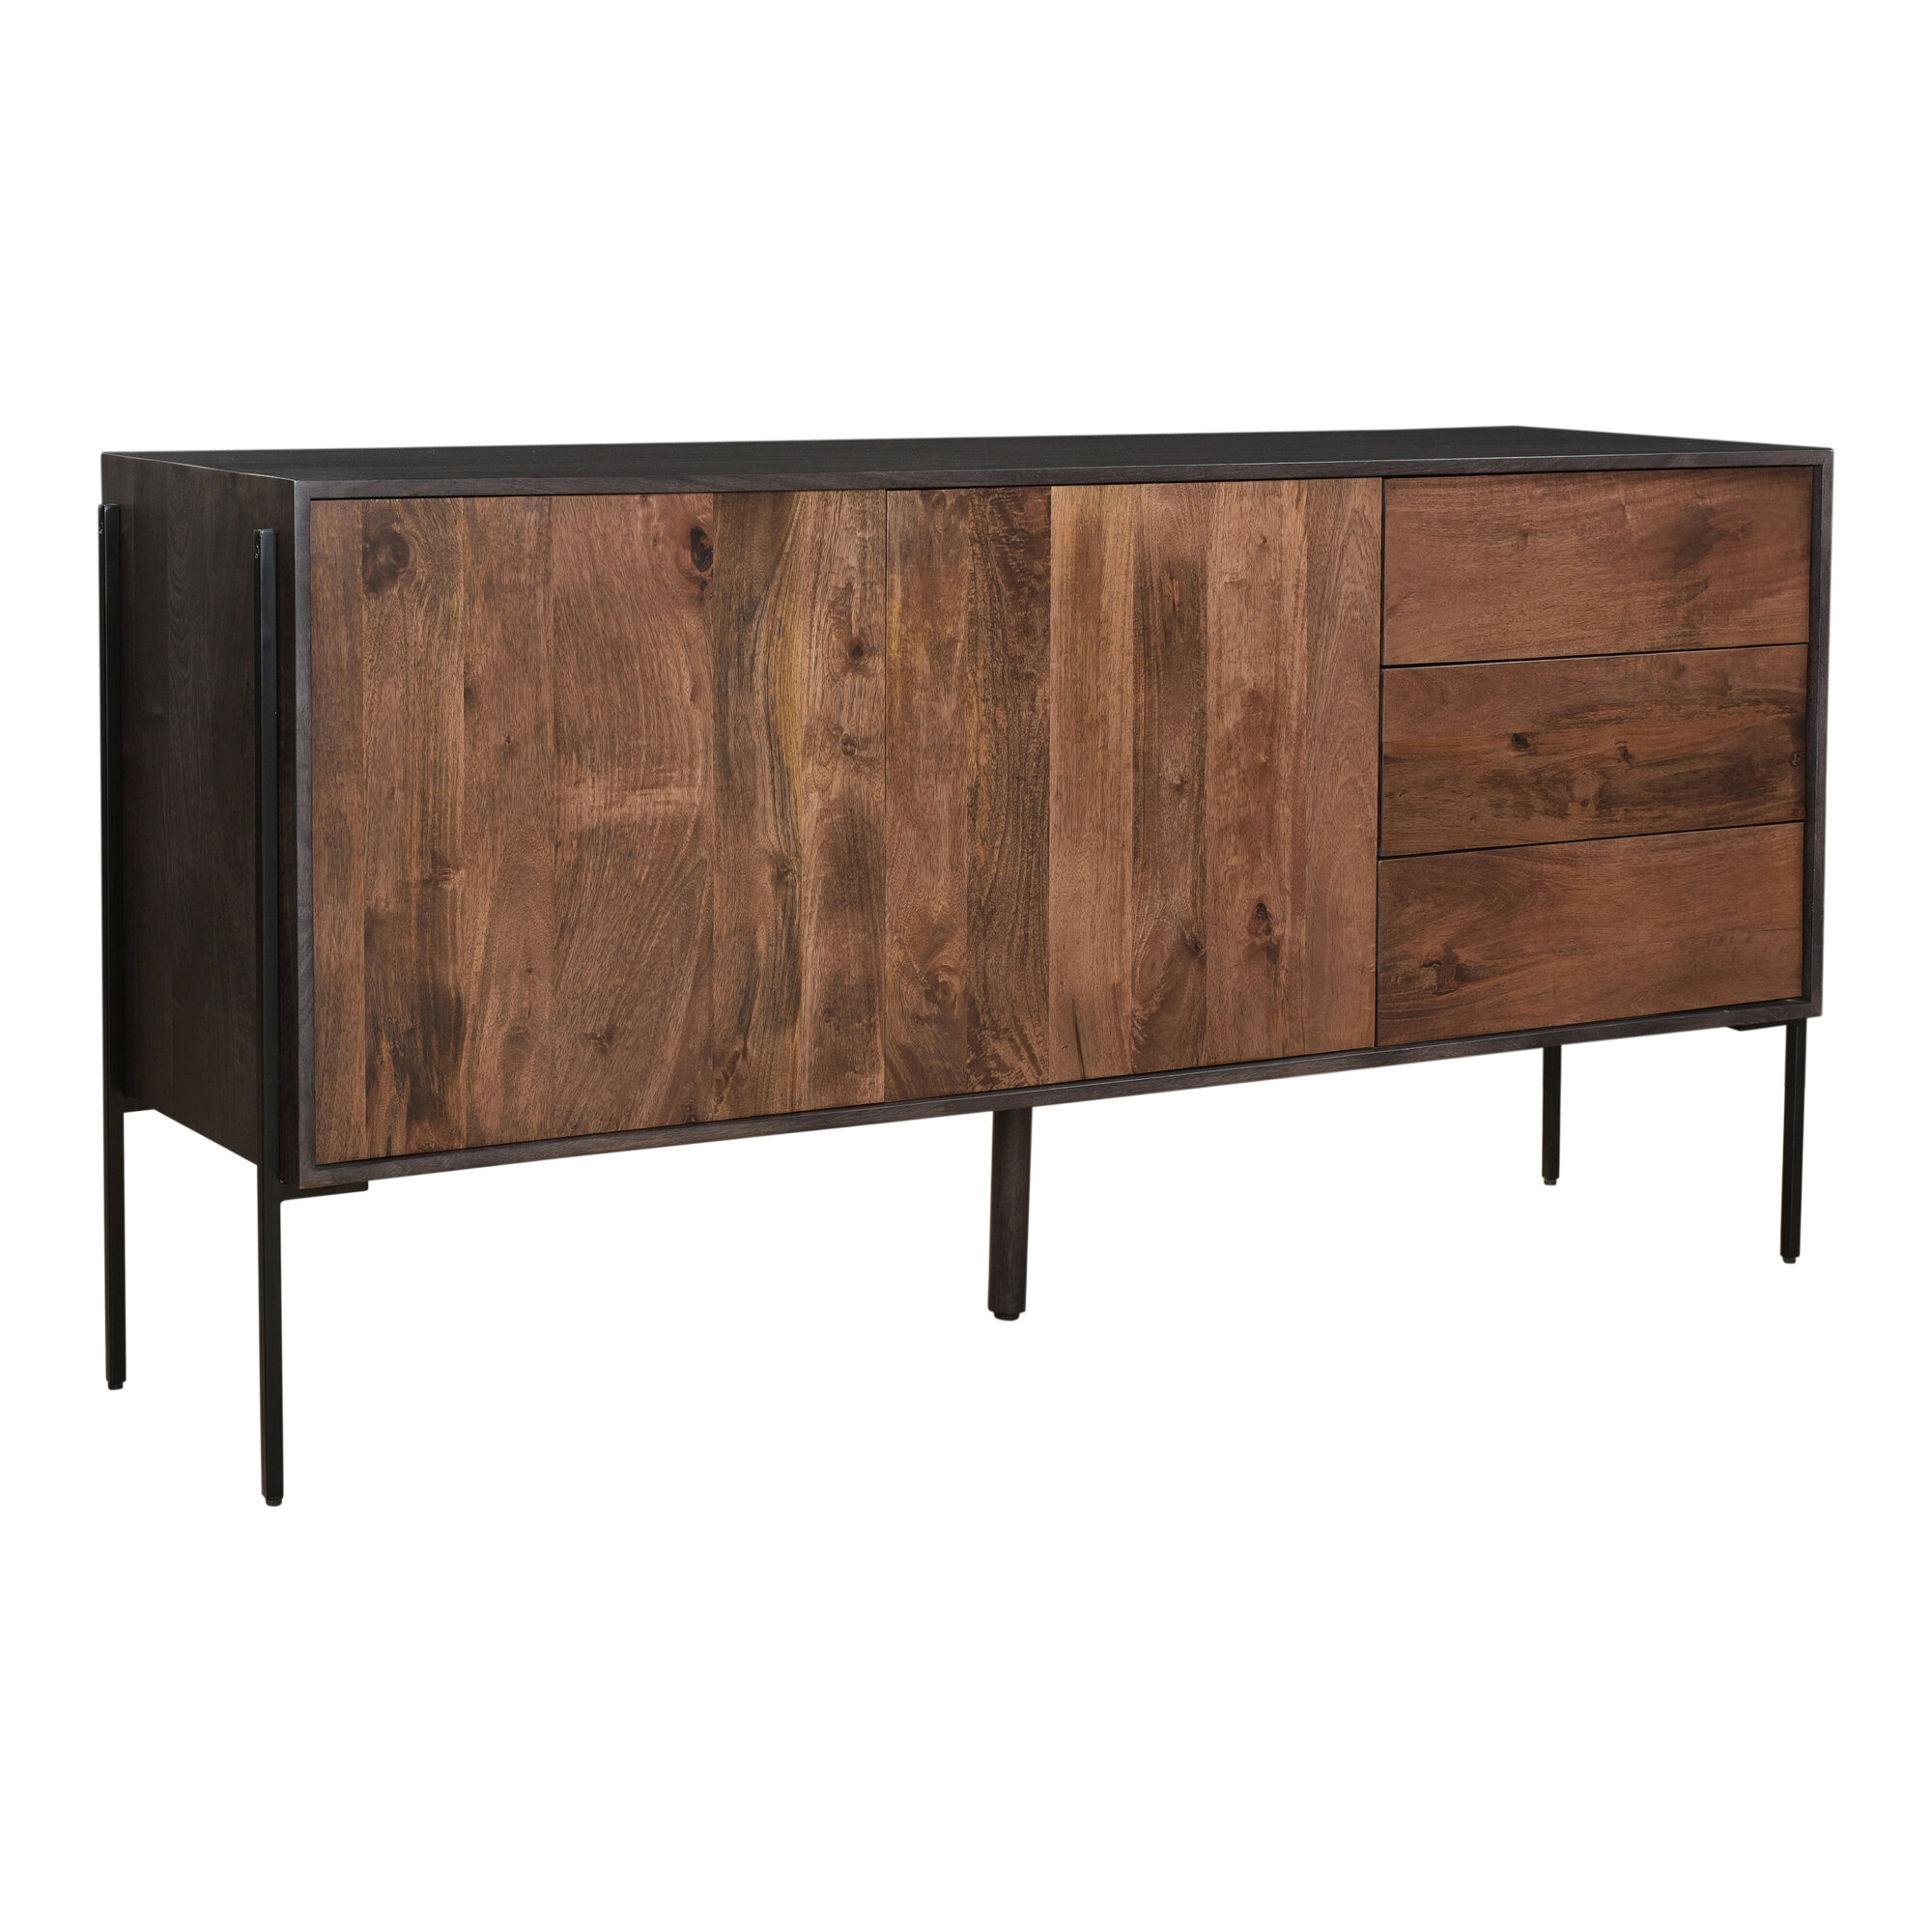 Bloch Sideboard In Sideboards By Foundry Select (View 5 of 30)